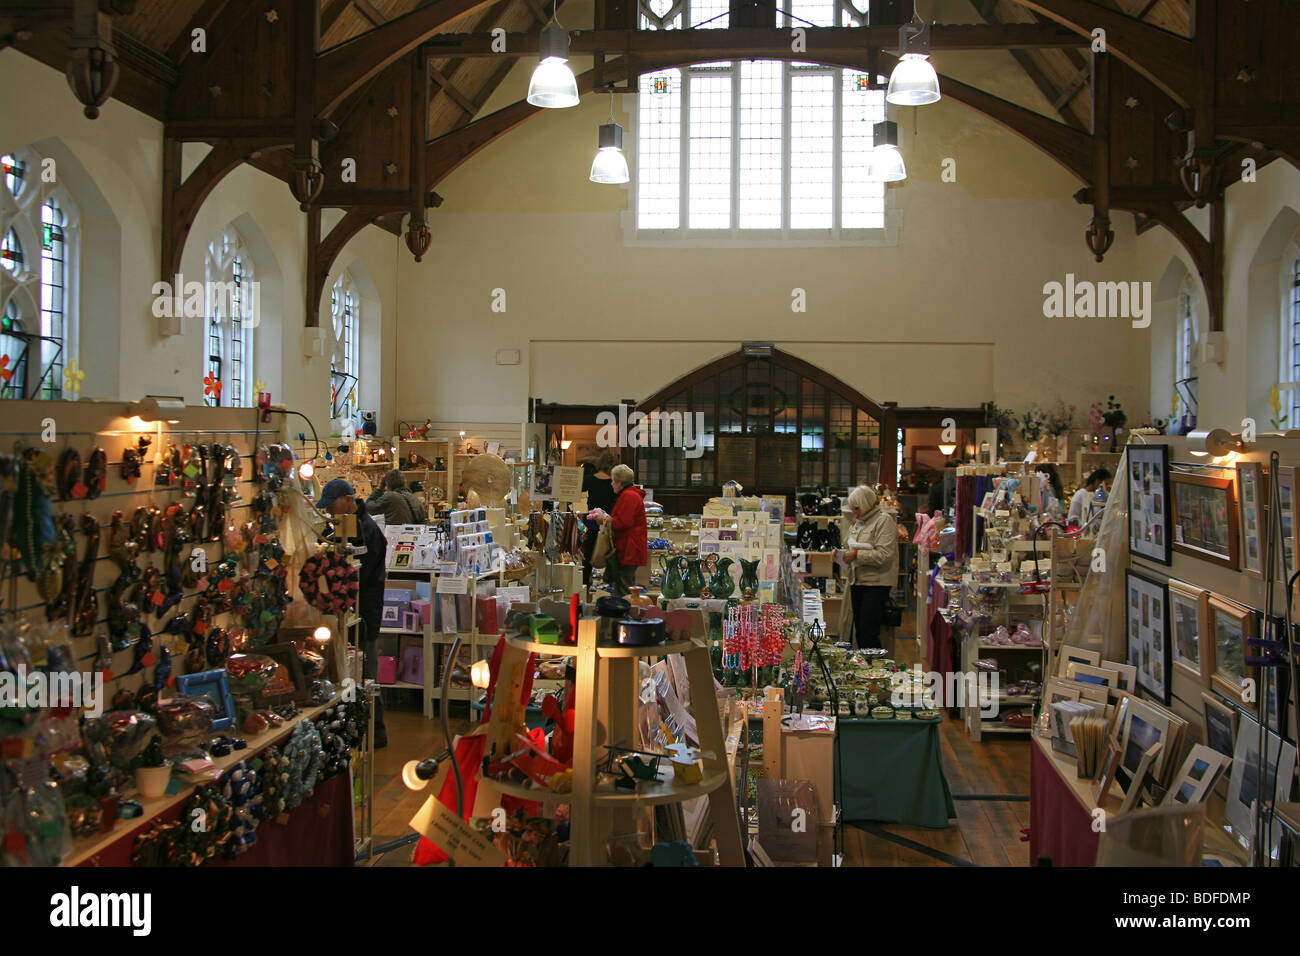 Inside the Lyn Valley Art and Craft Centre housed in a converted ...